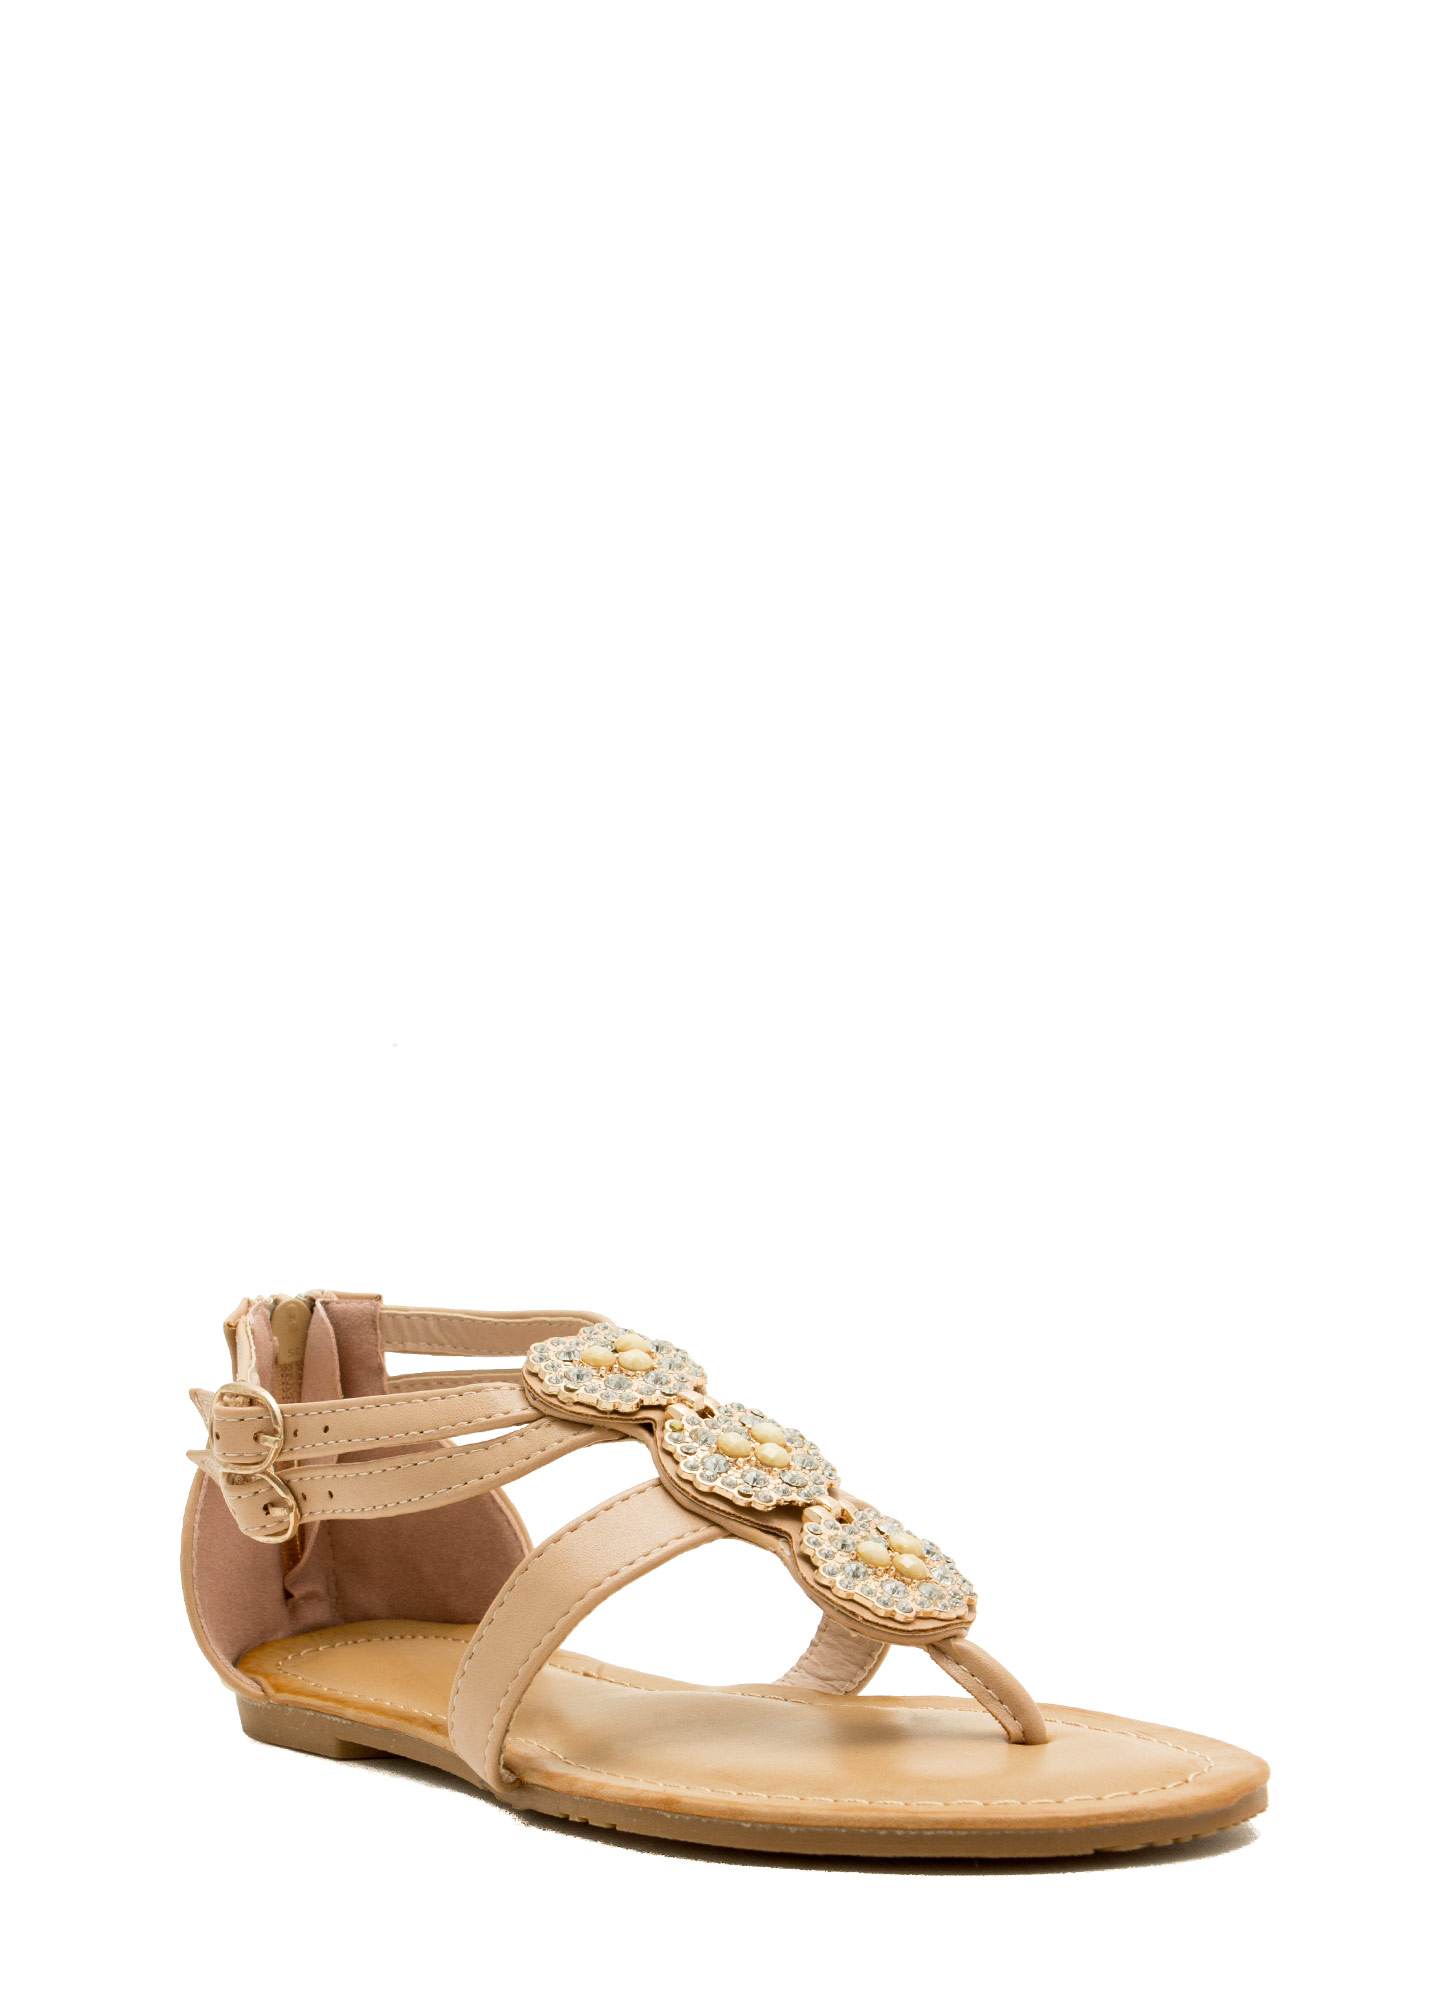 Measure In Jewels Thong Sandals NUDE